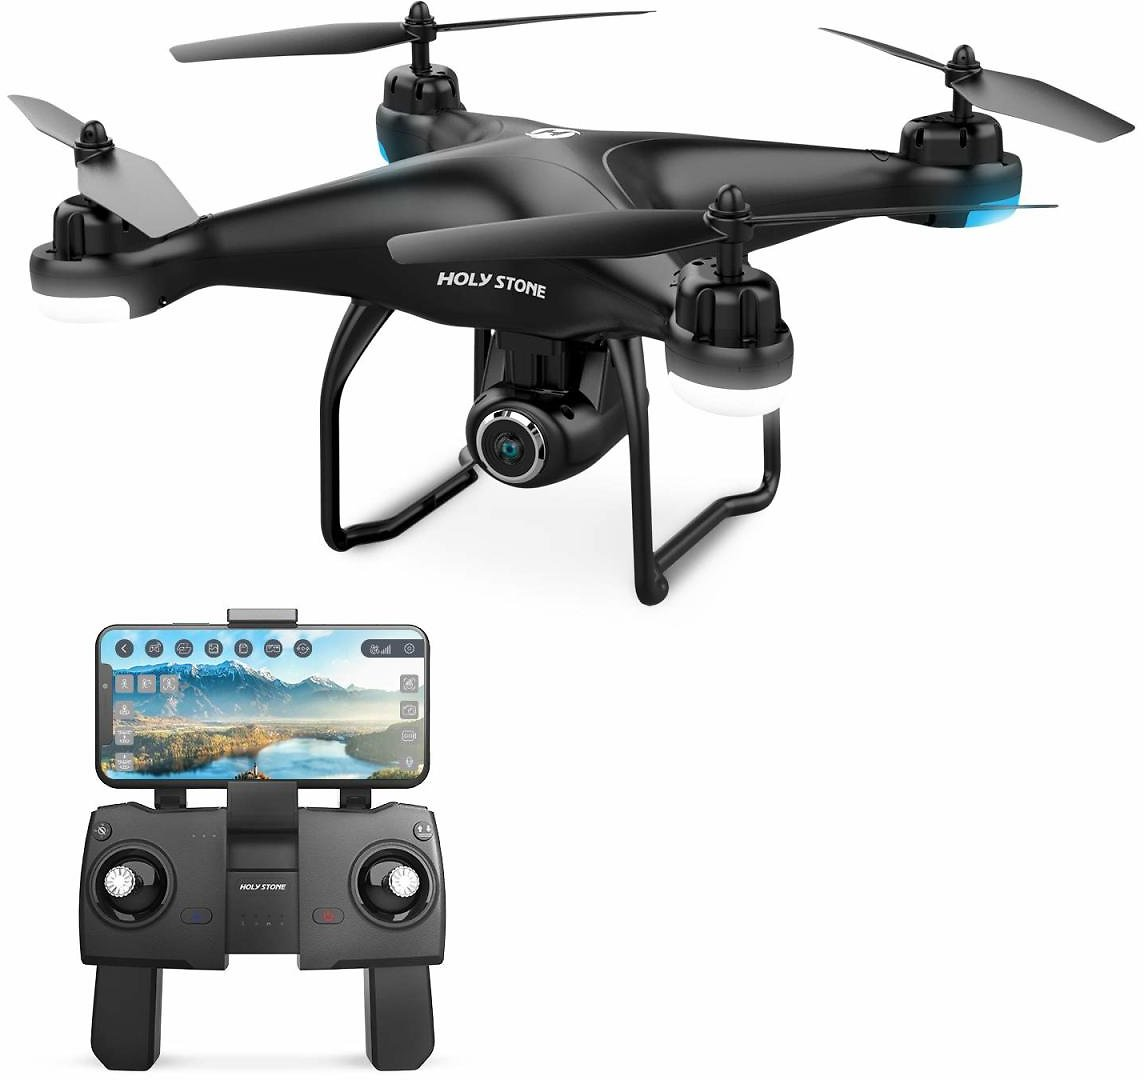 Holy Stone HS120D GPS Drone with 1080P Camera and Video for Adults GPS Return Home, RC Quadcotper Helicopter for Kids Beginners 18 Min Flight Time with Follow Me Selfie Functions